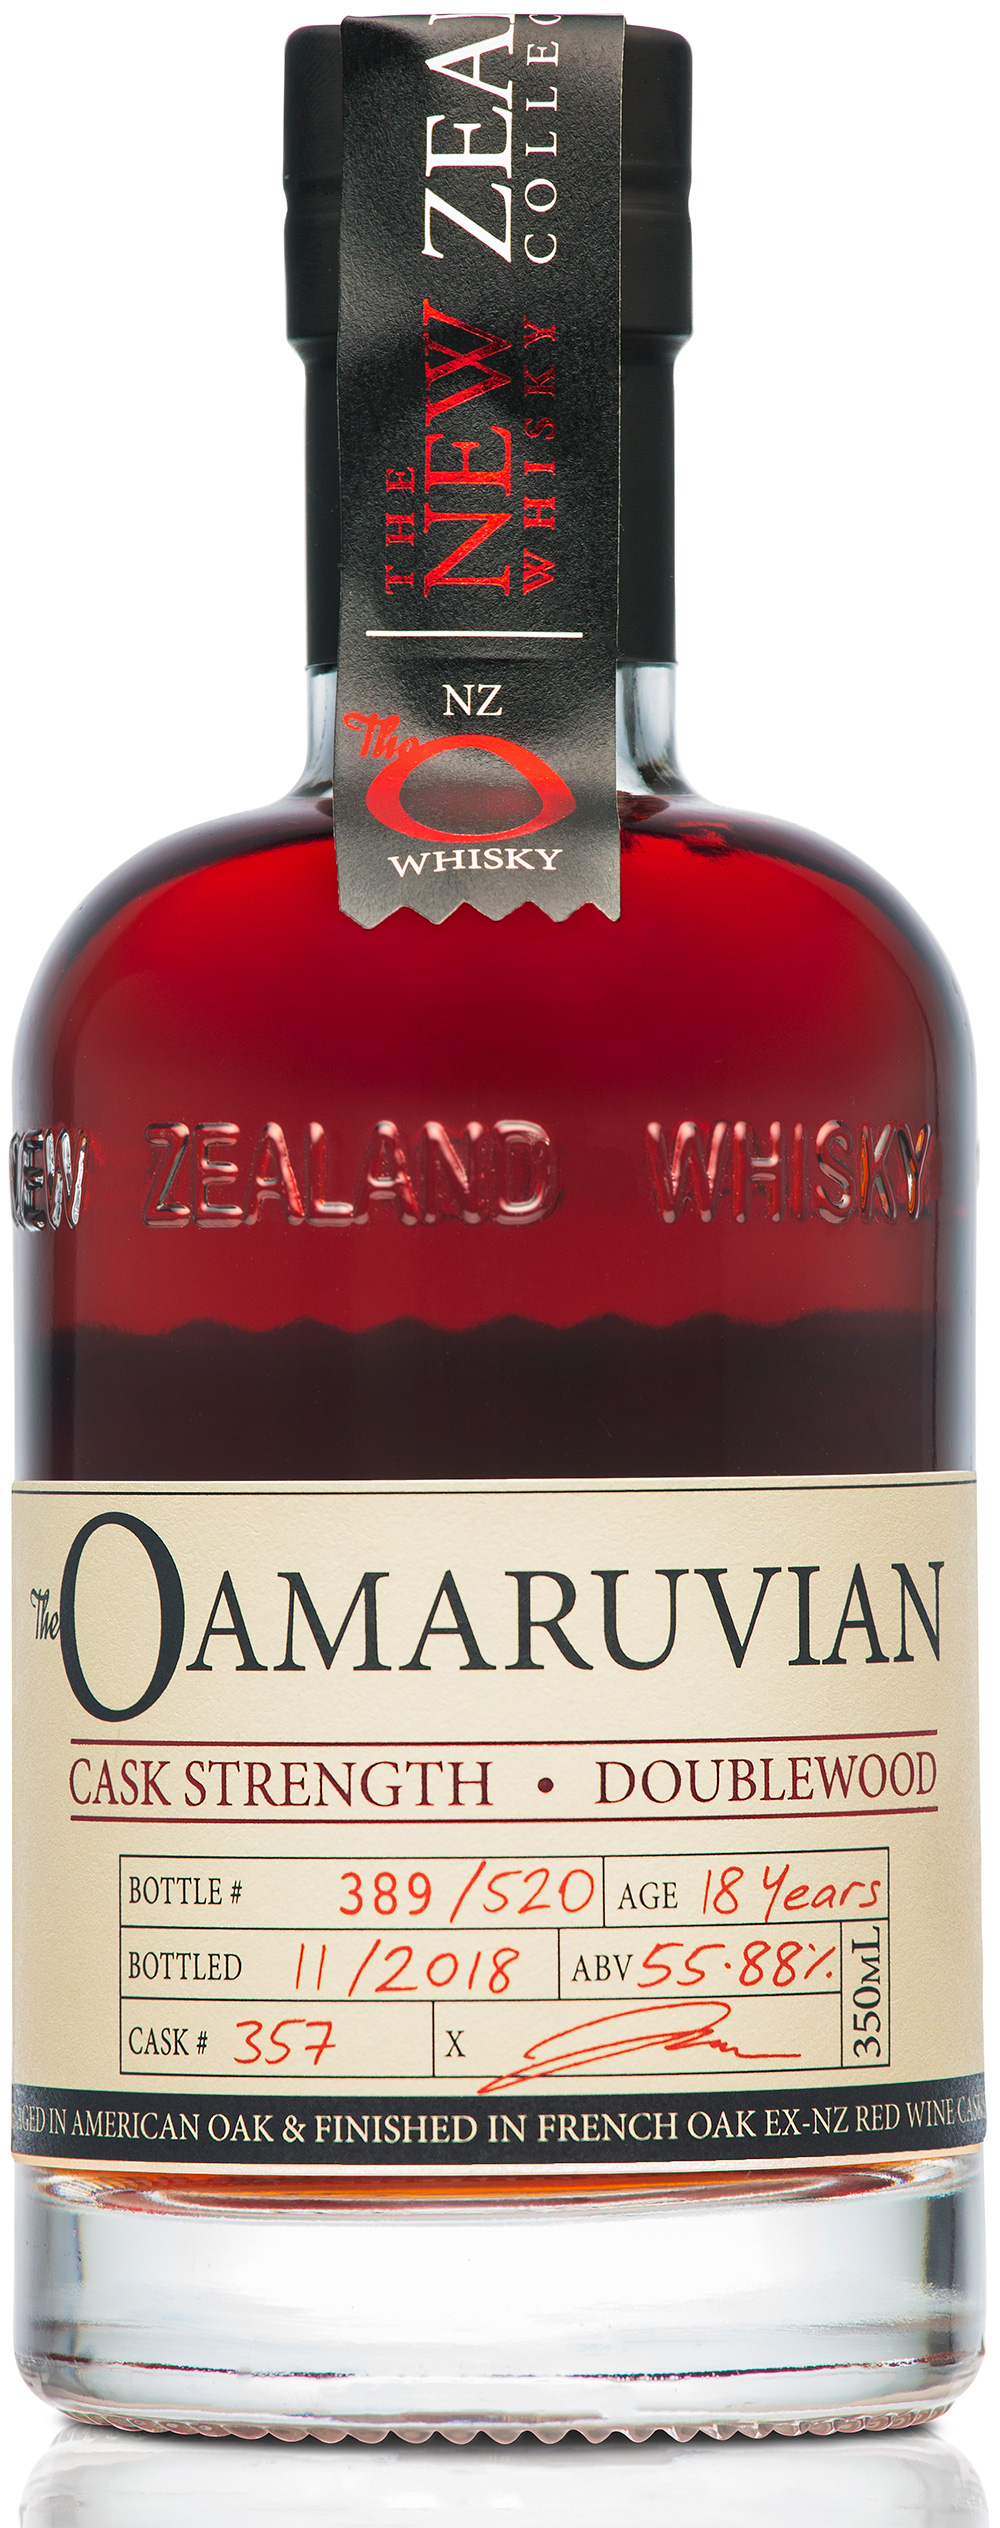 The New Zealand Whisky Collection Oamaruvian Cask Strength